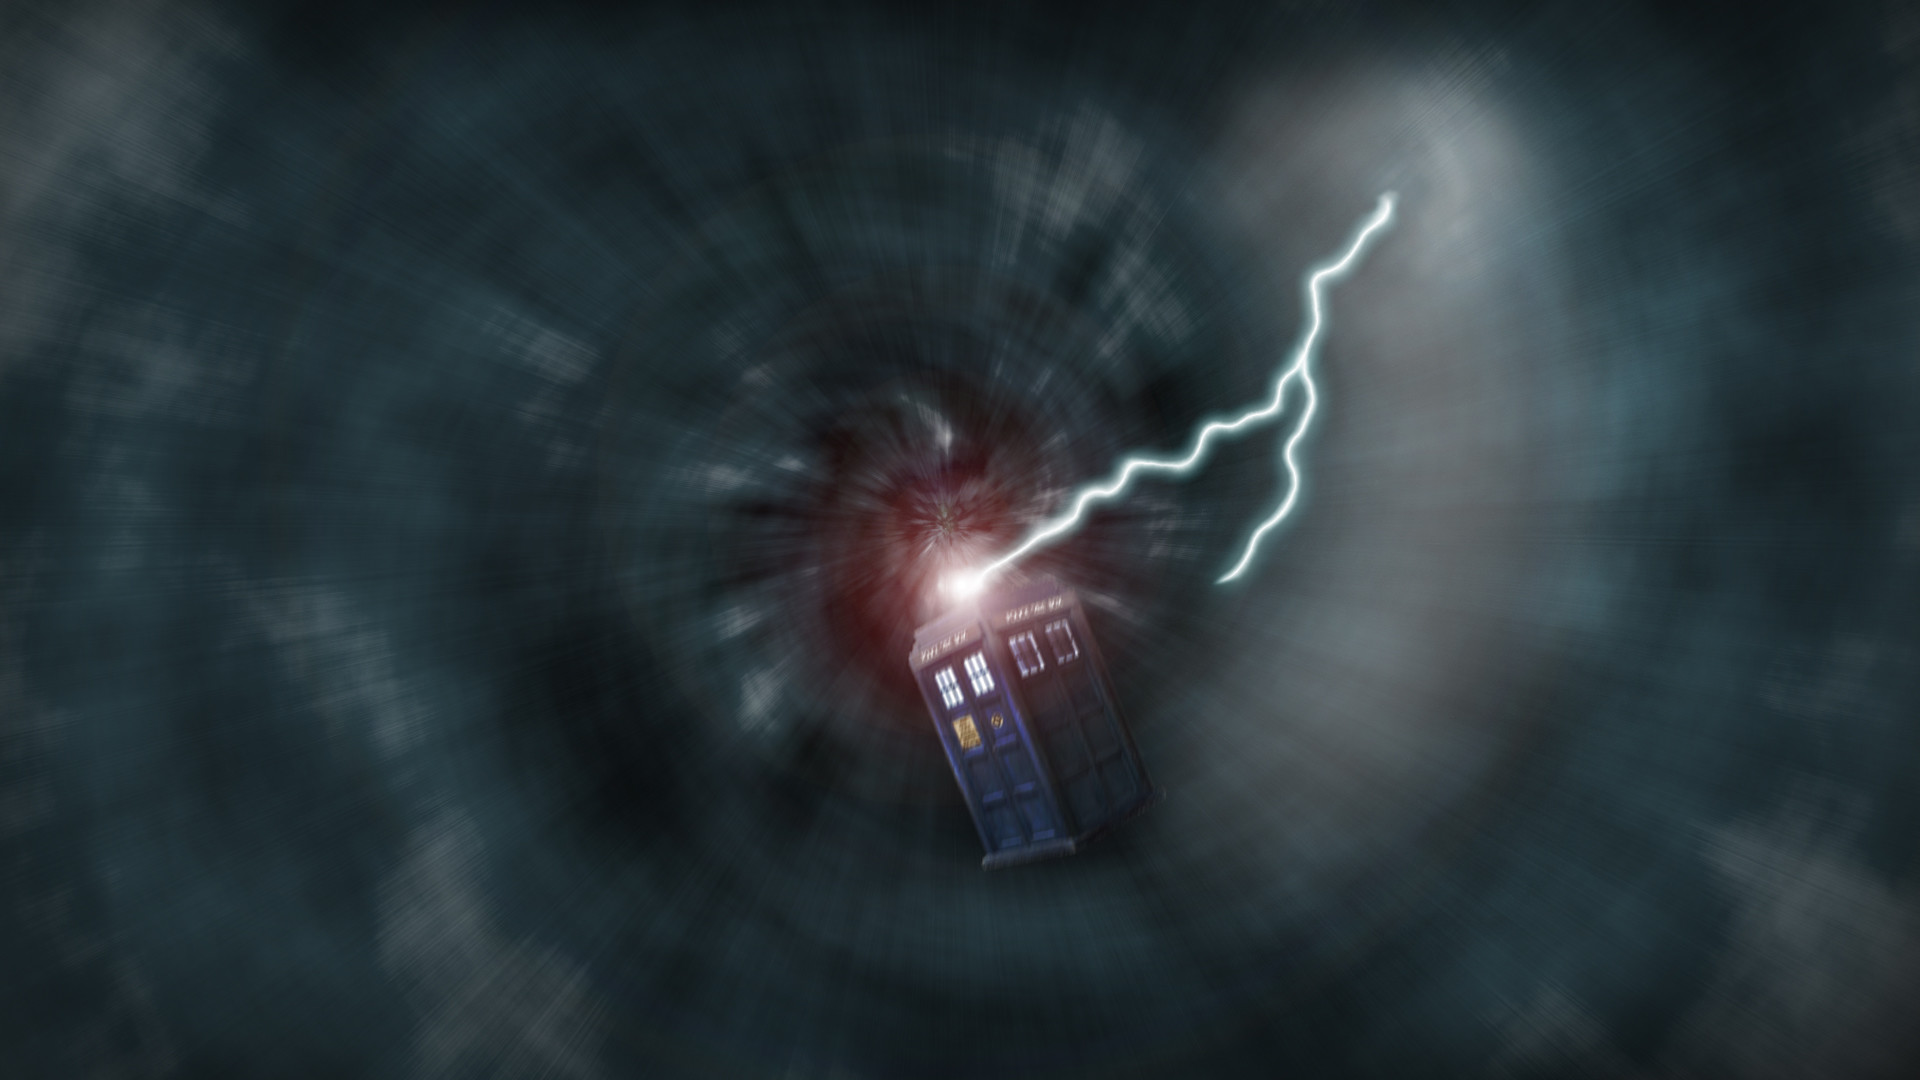 Doctor Who Tardis Desktop Wallpaper (67+ Images